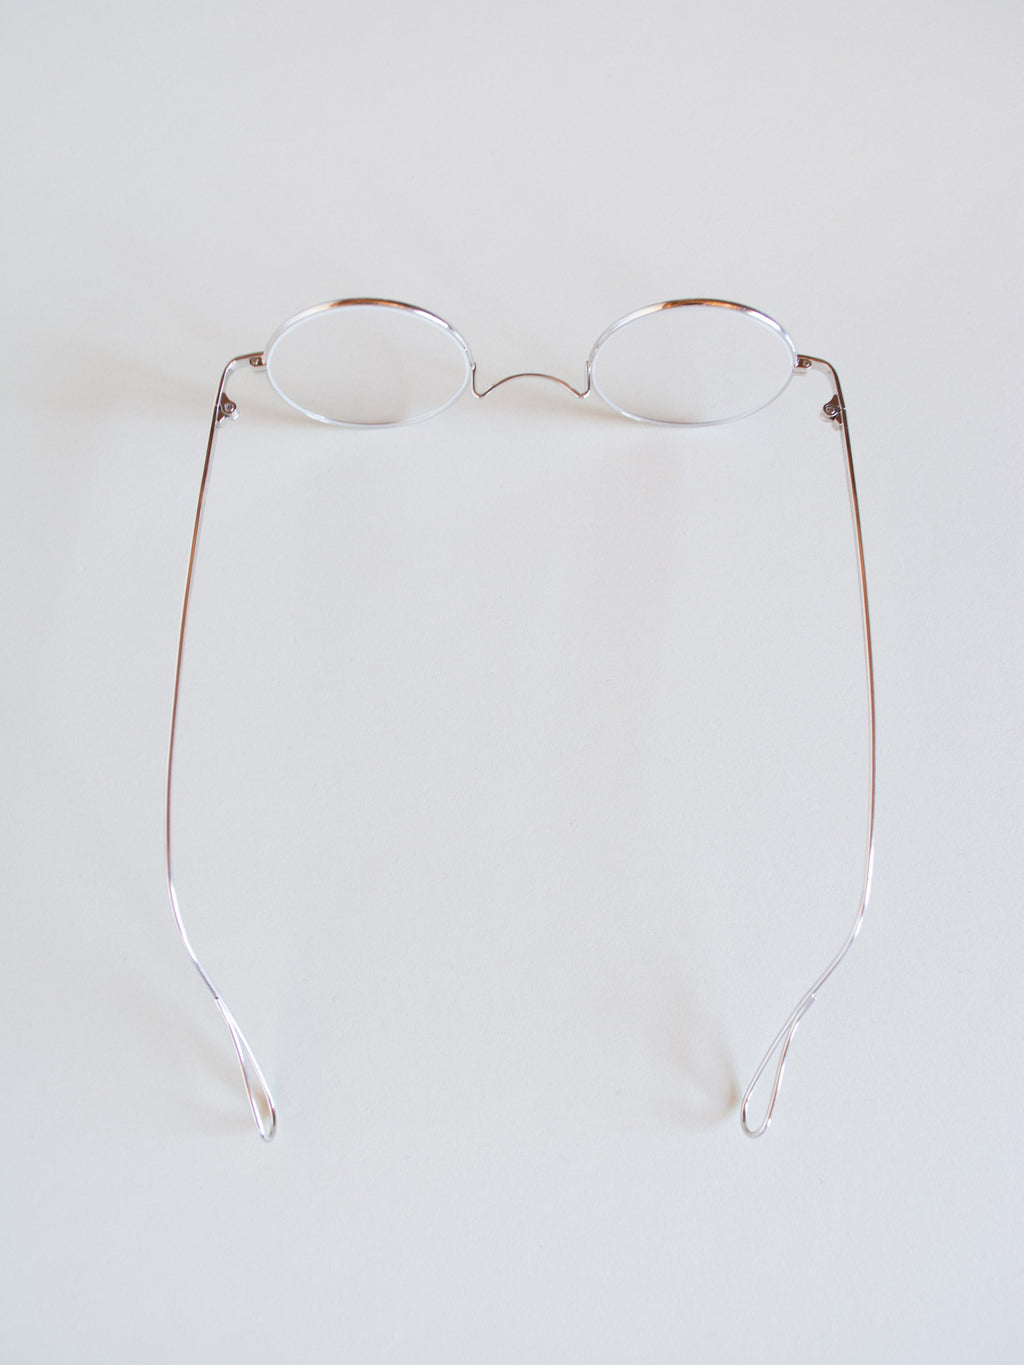 Namu Shop - Buddy Optical a/n - Silver